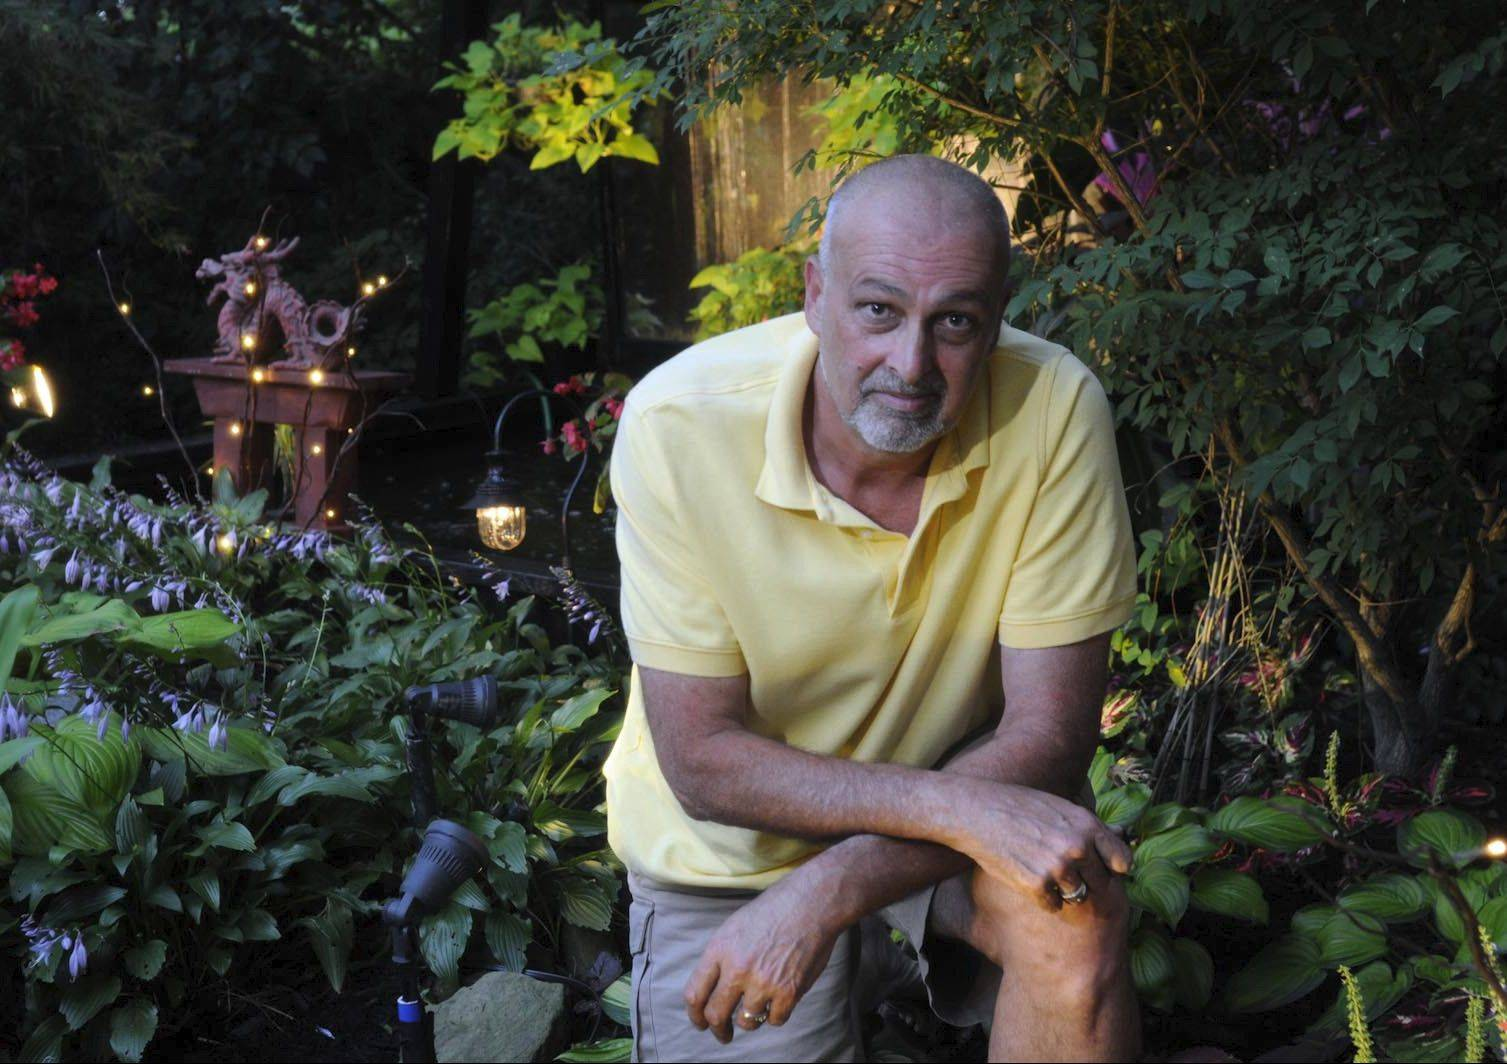 Ed McHugh is the winner of a garden contest sponsored by the Pittsburgh Post-Gazette and the Pittsburgh Botanical Garden.